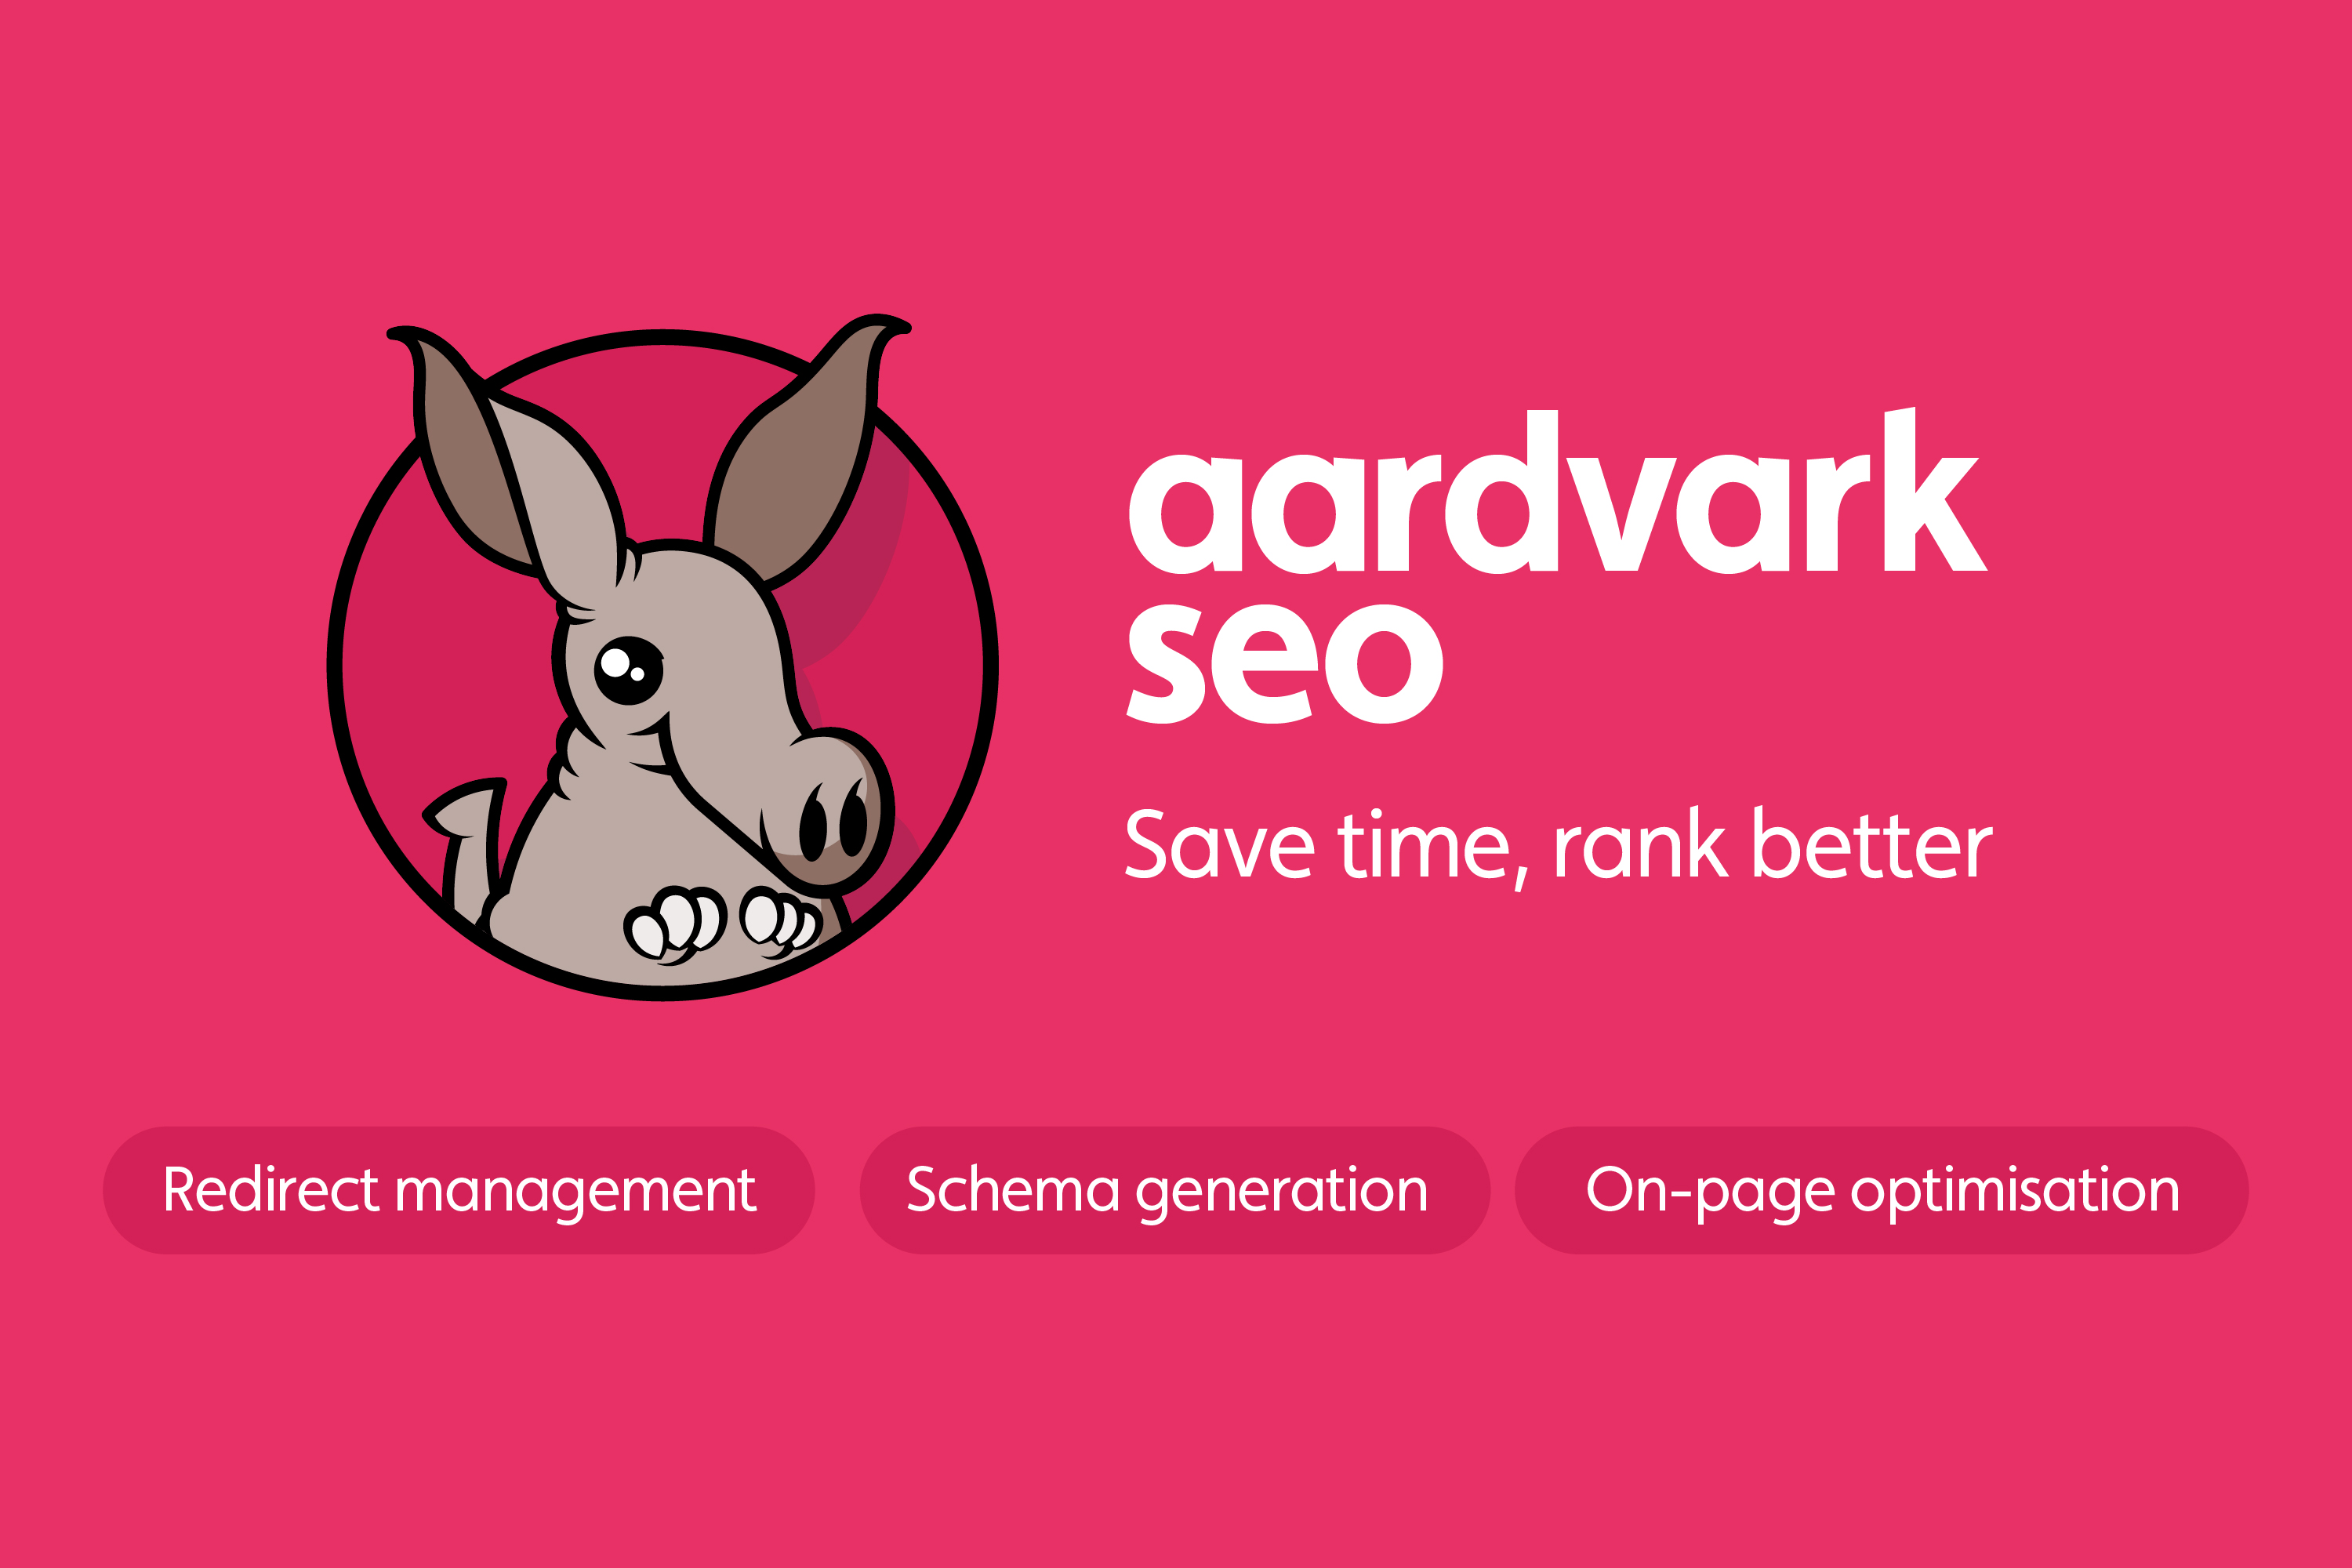 Aardvark SEO Mascot as used on Statemic site